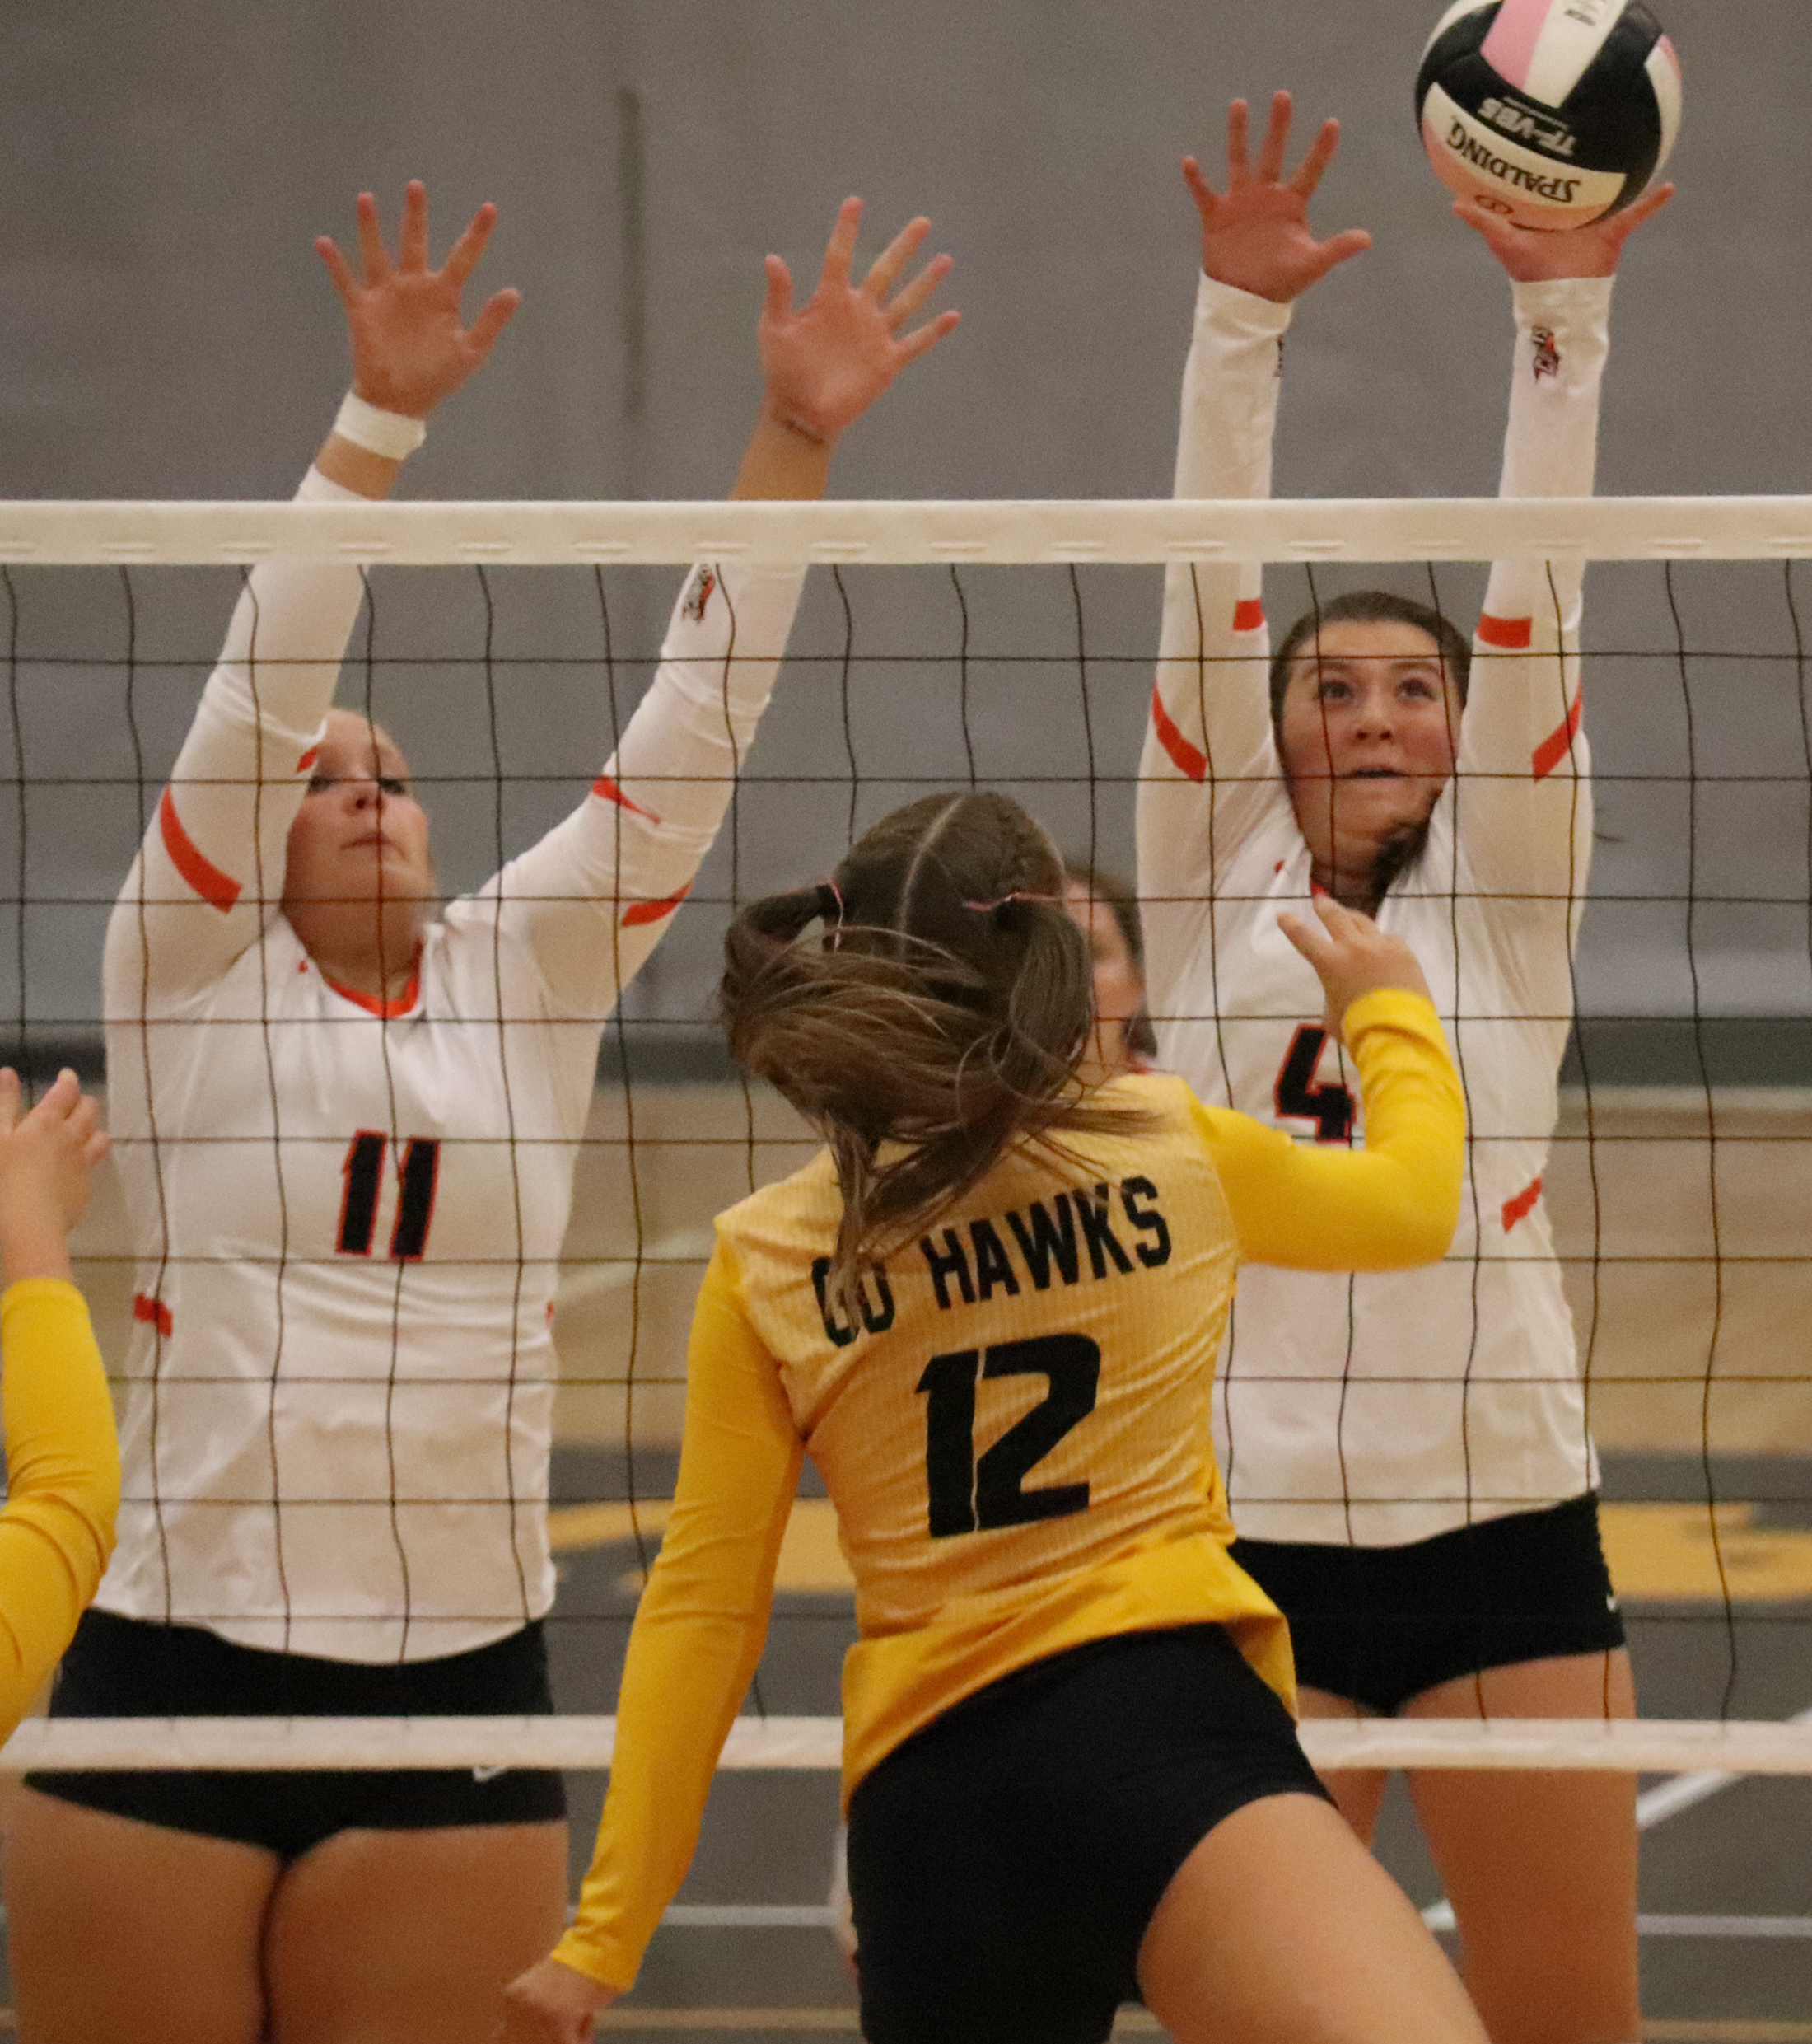 Comets fall in Go-Hawks in straight sets